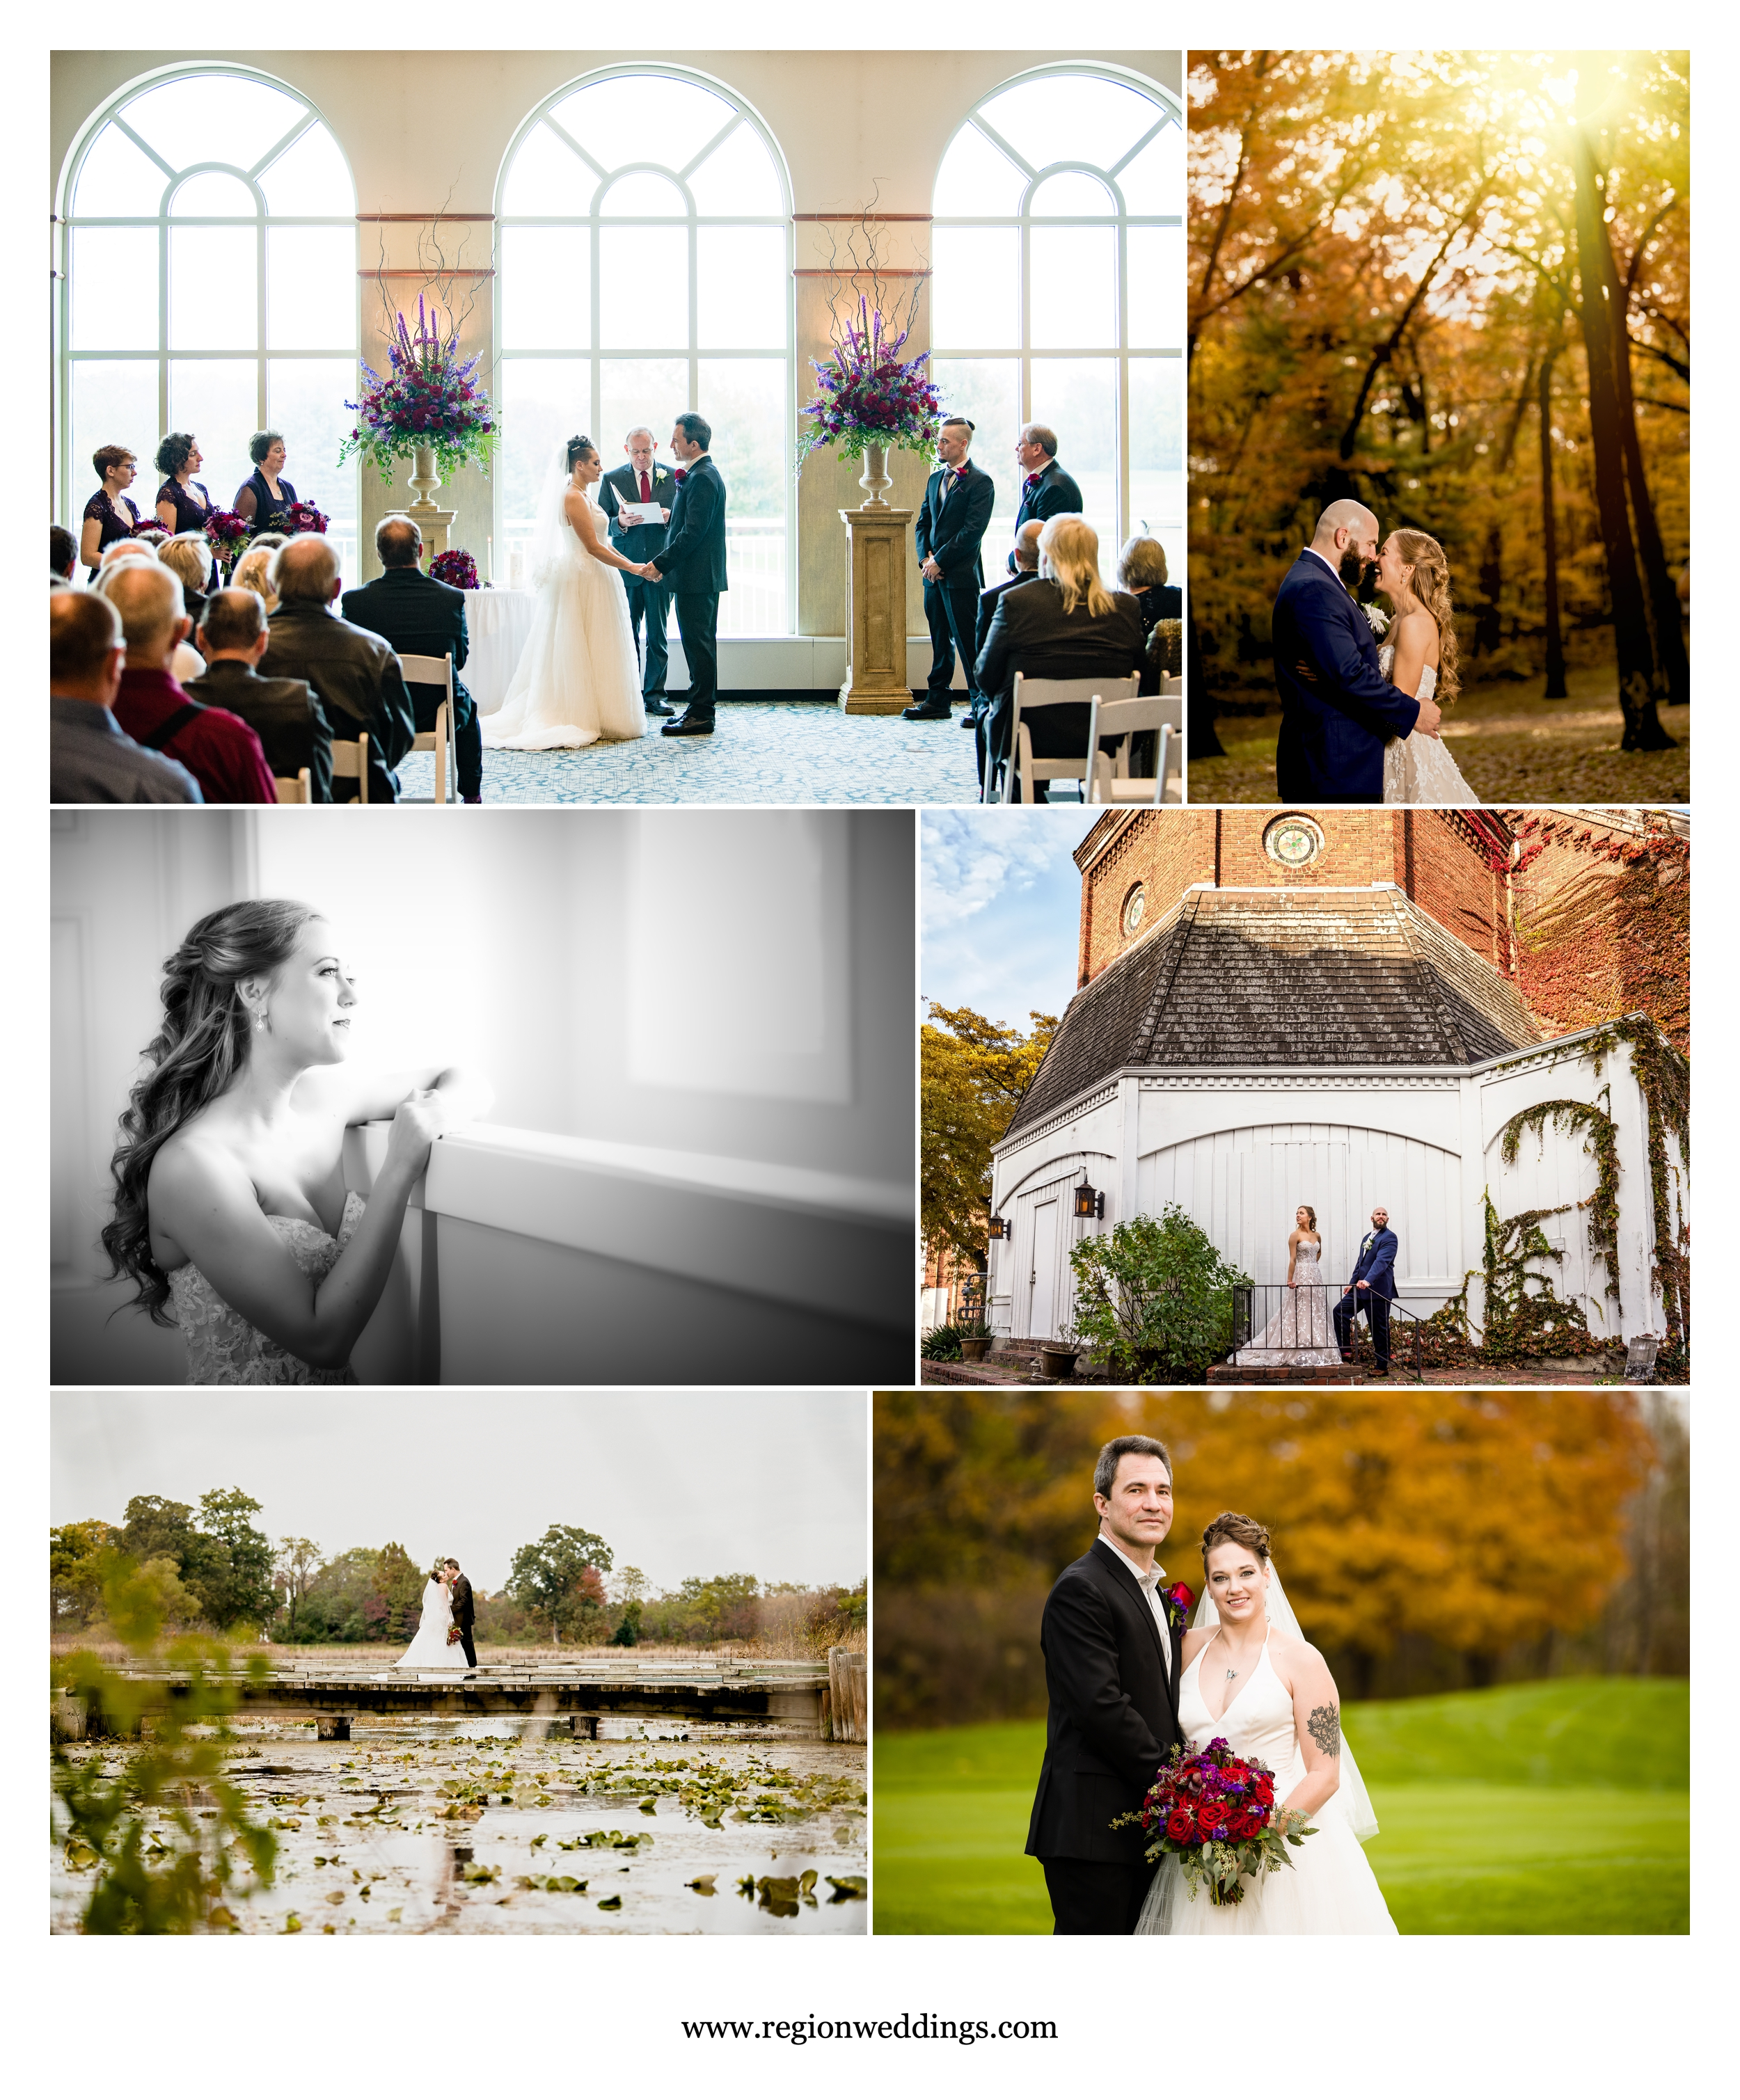 Fall weddings at Sand Creek Country Club and Krueger Memorial Hall.